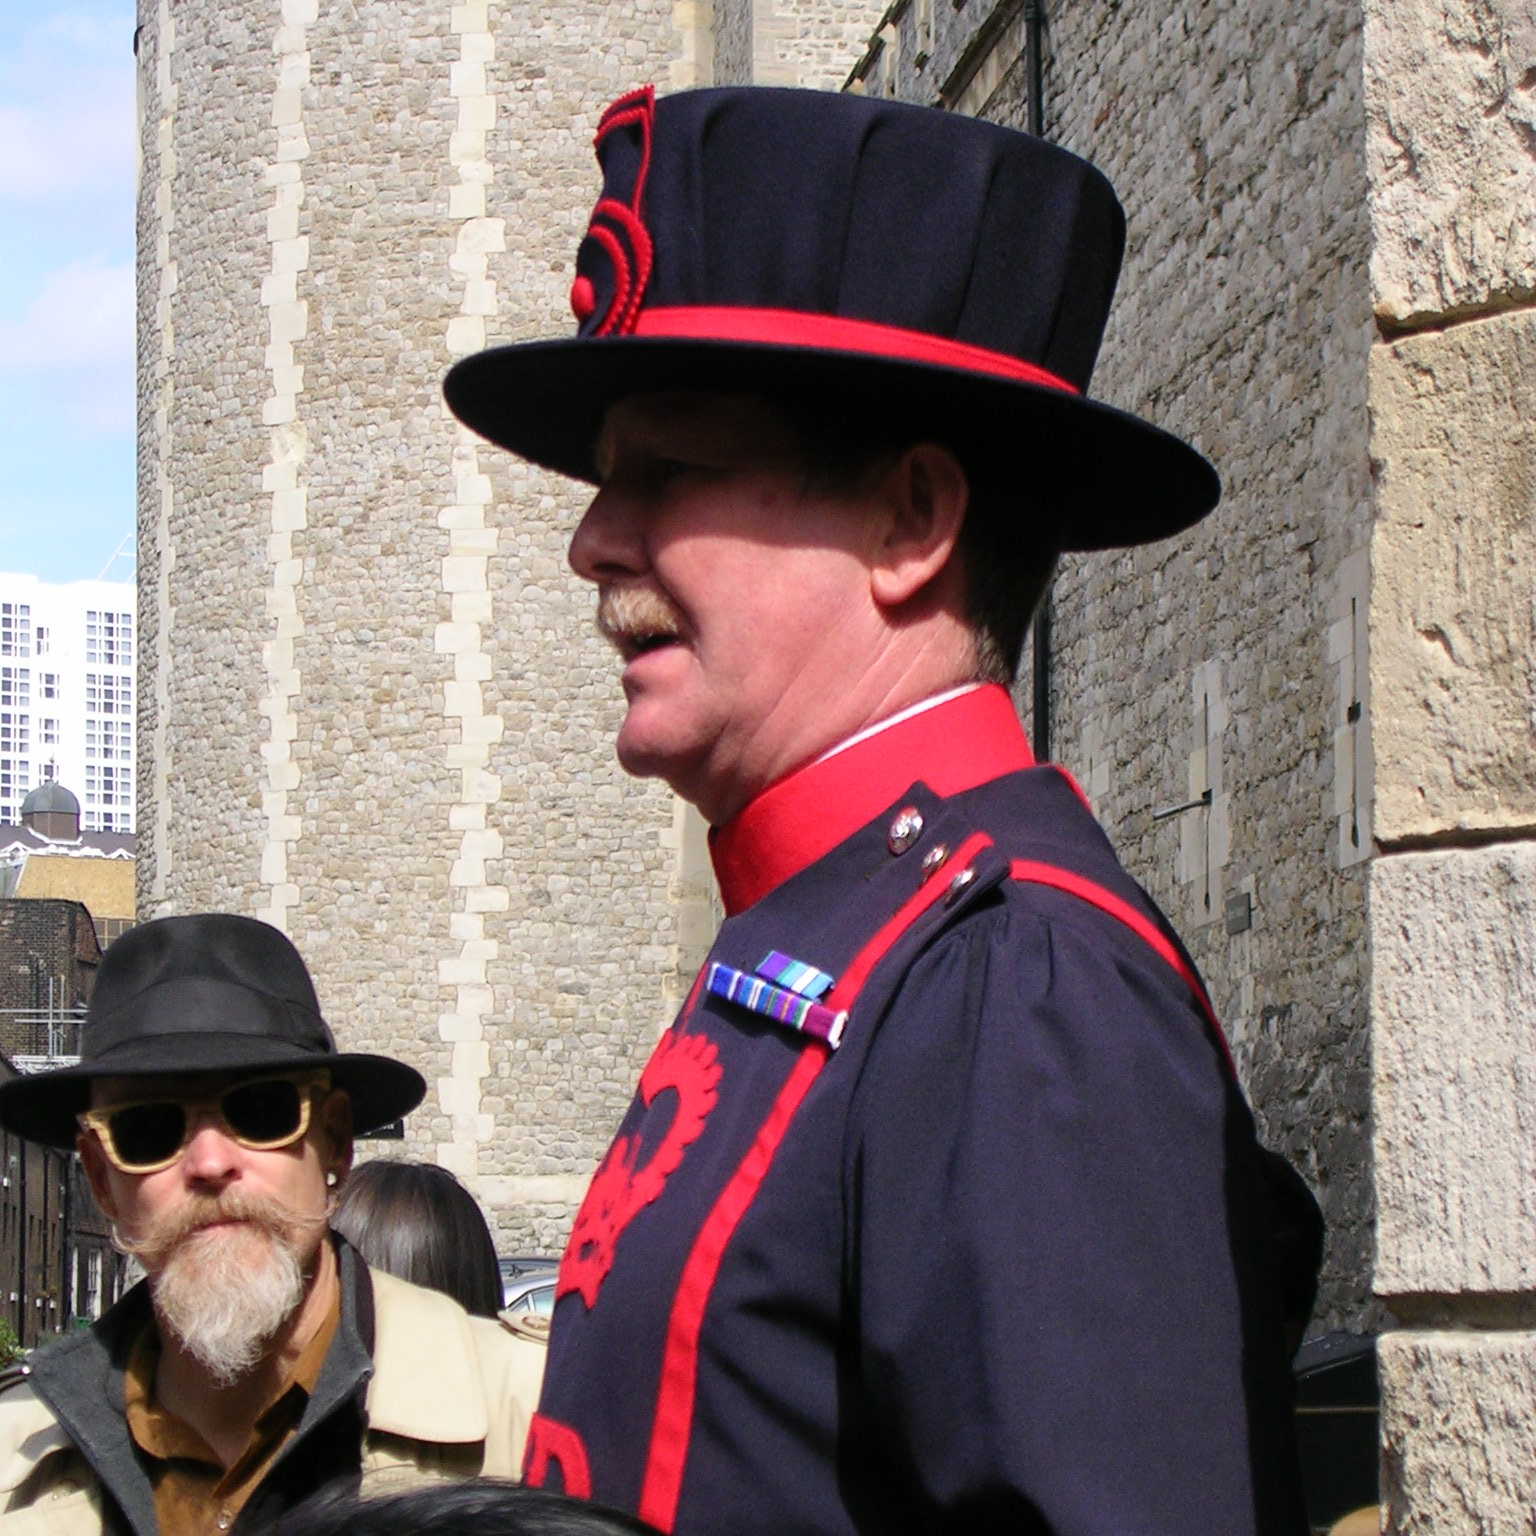 A Yeoman Warder (Beefeater) at the Tower of London by The Doubtful Traveller